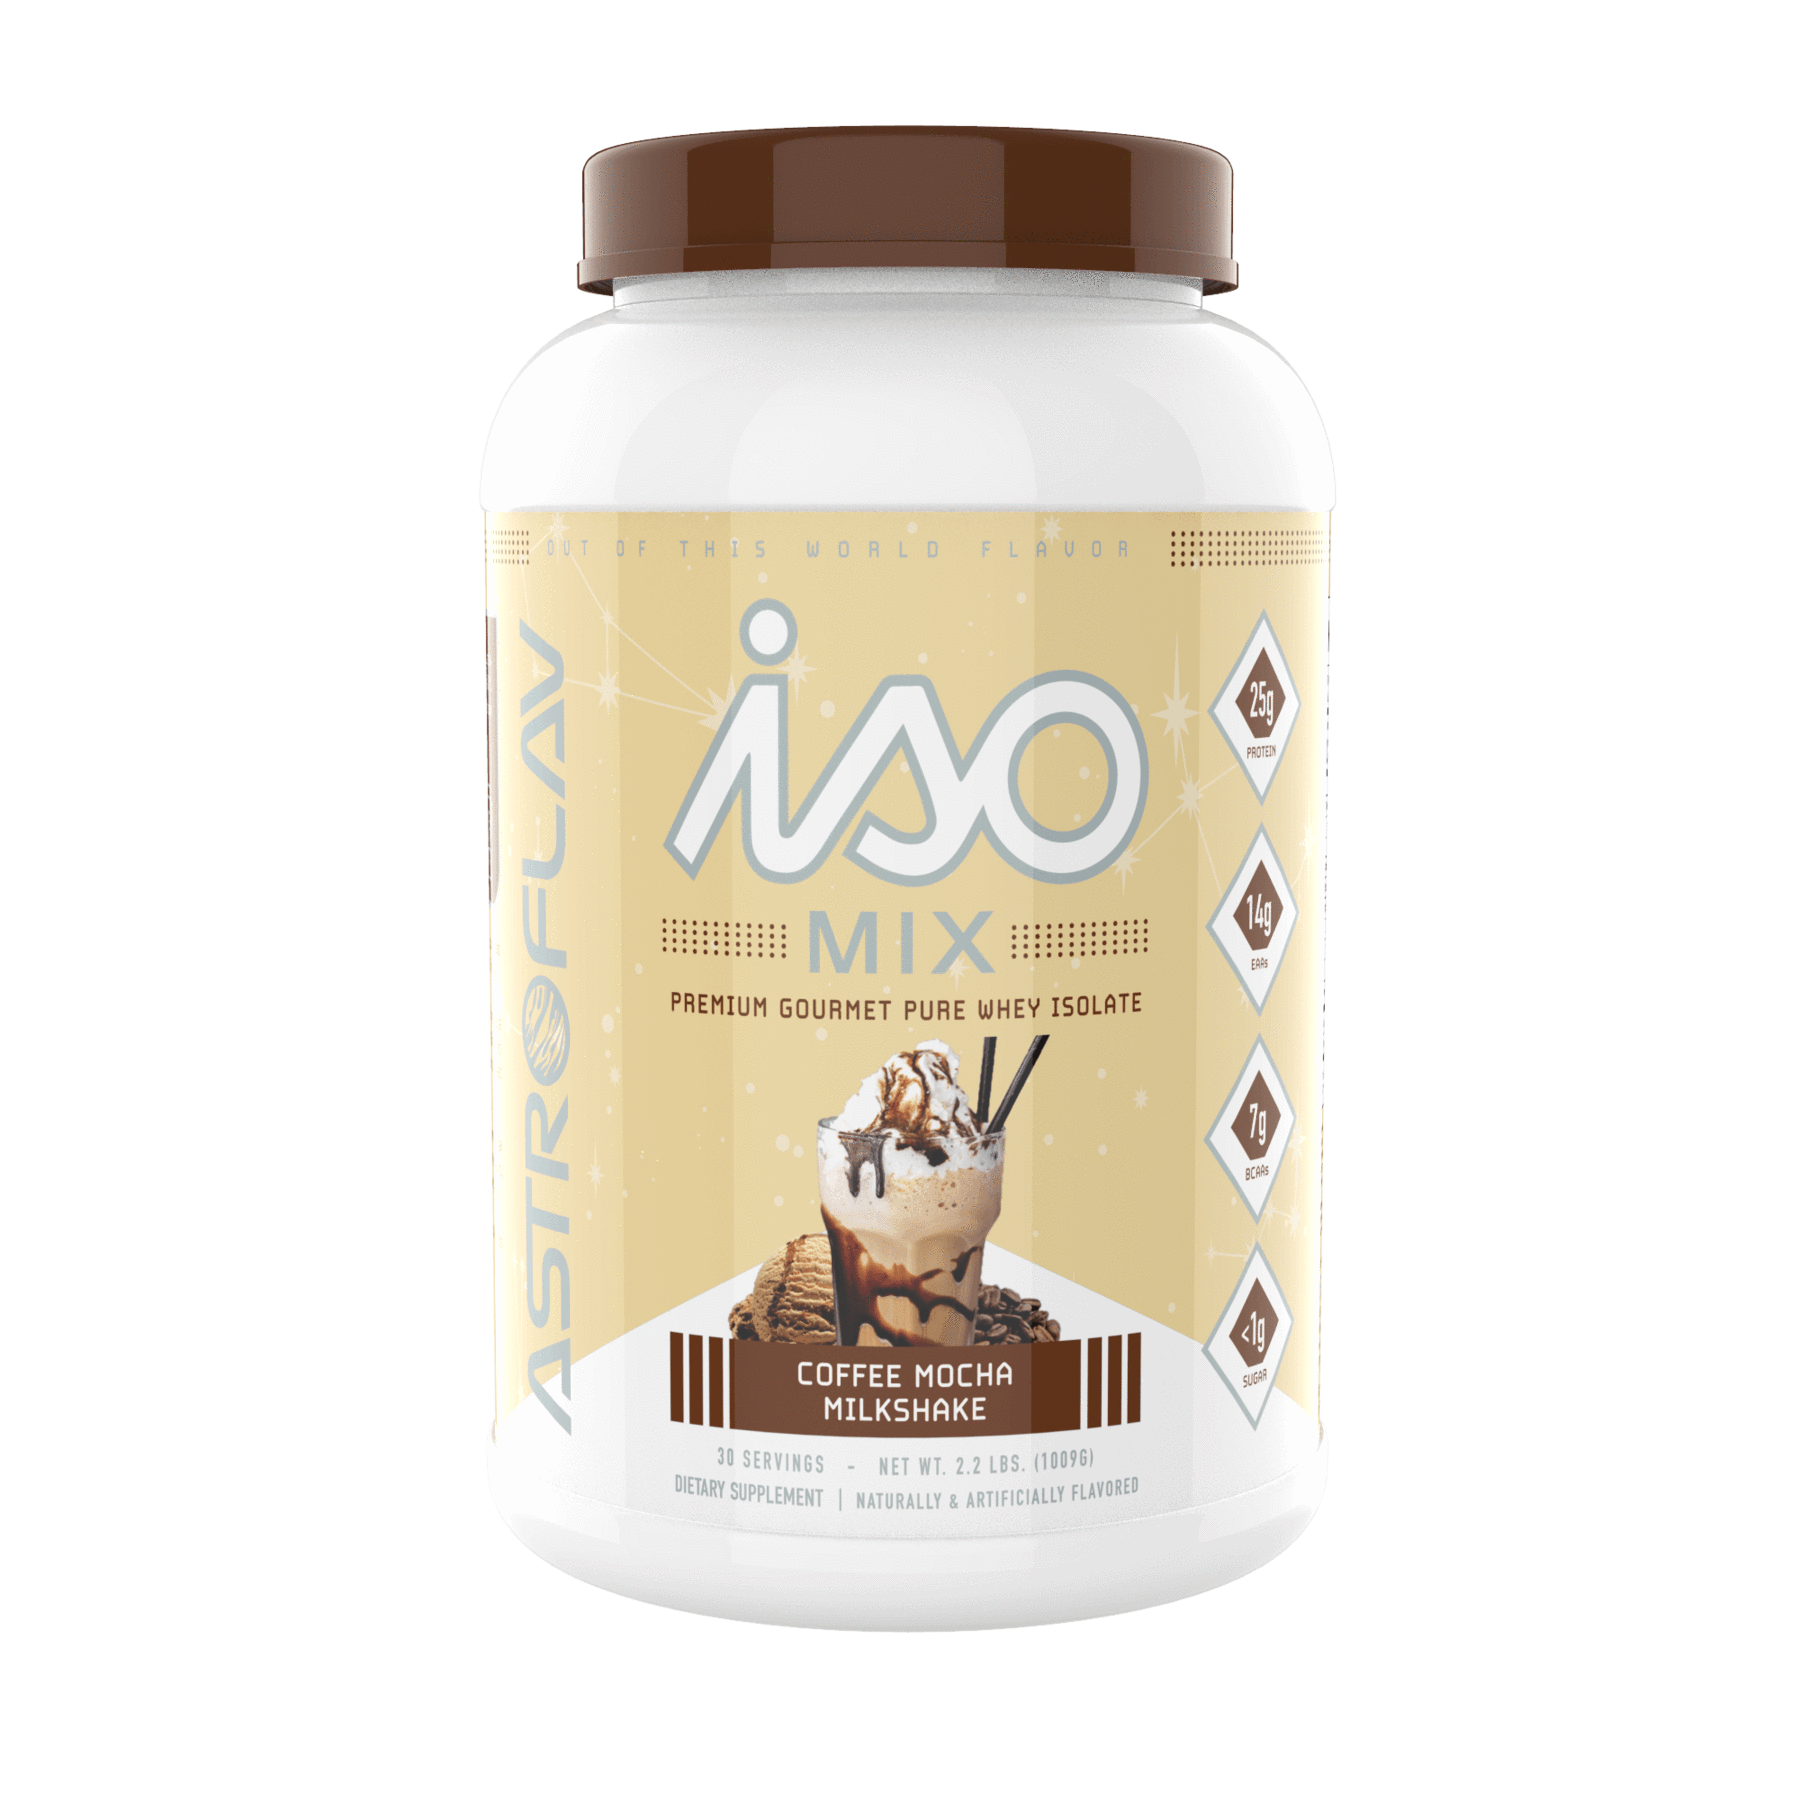 AstroFlav Iso Mix - Pure  Whey Isolate Protein